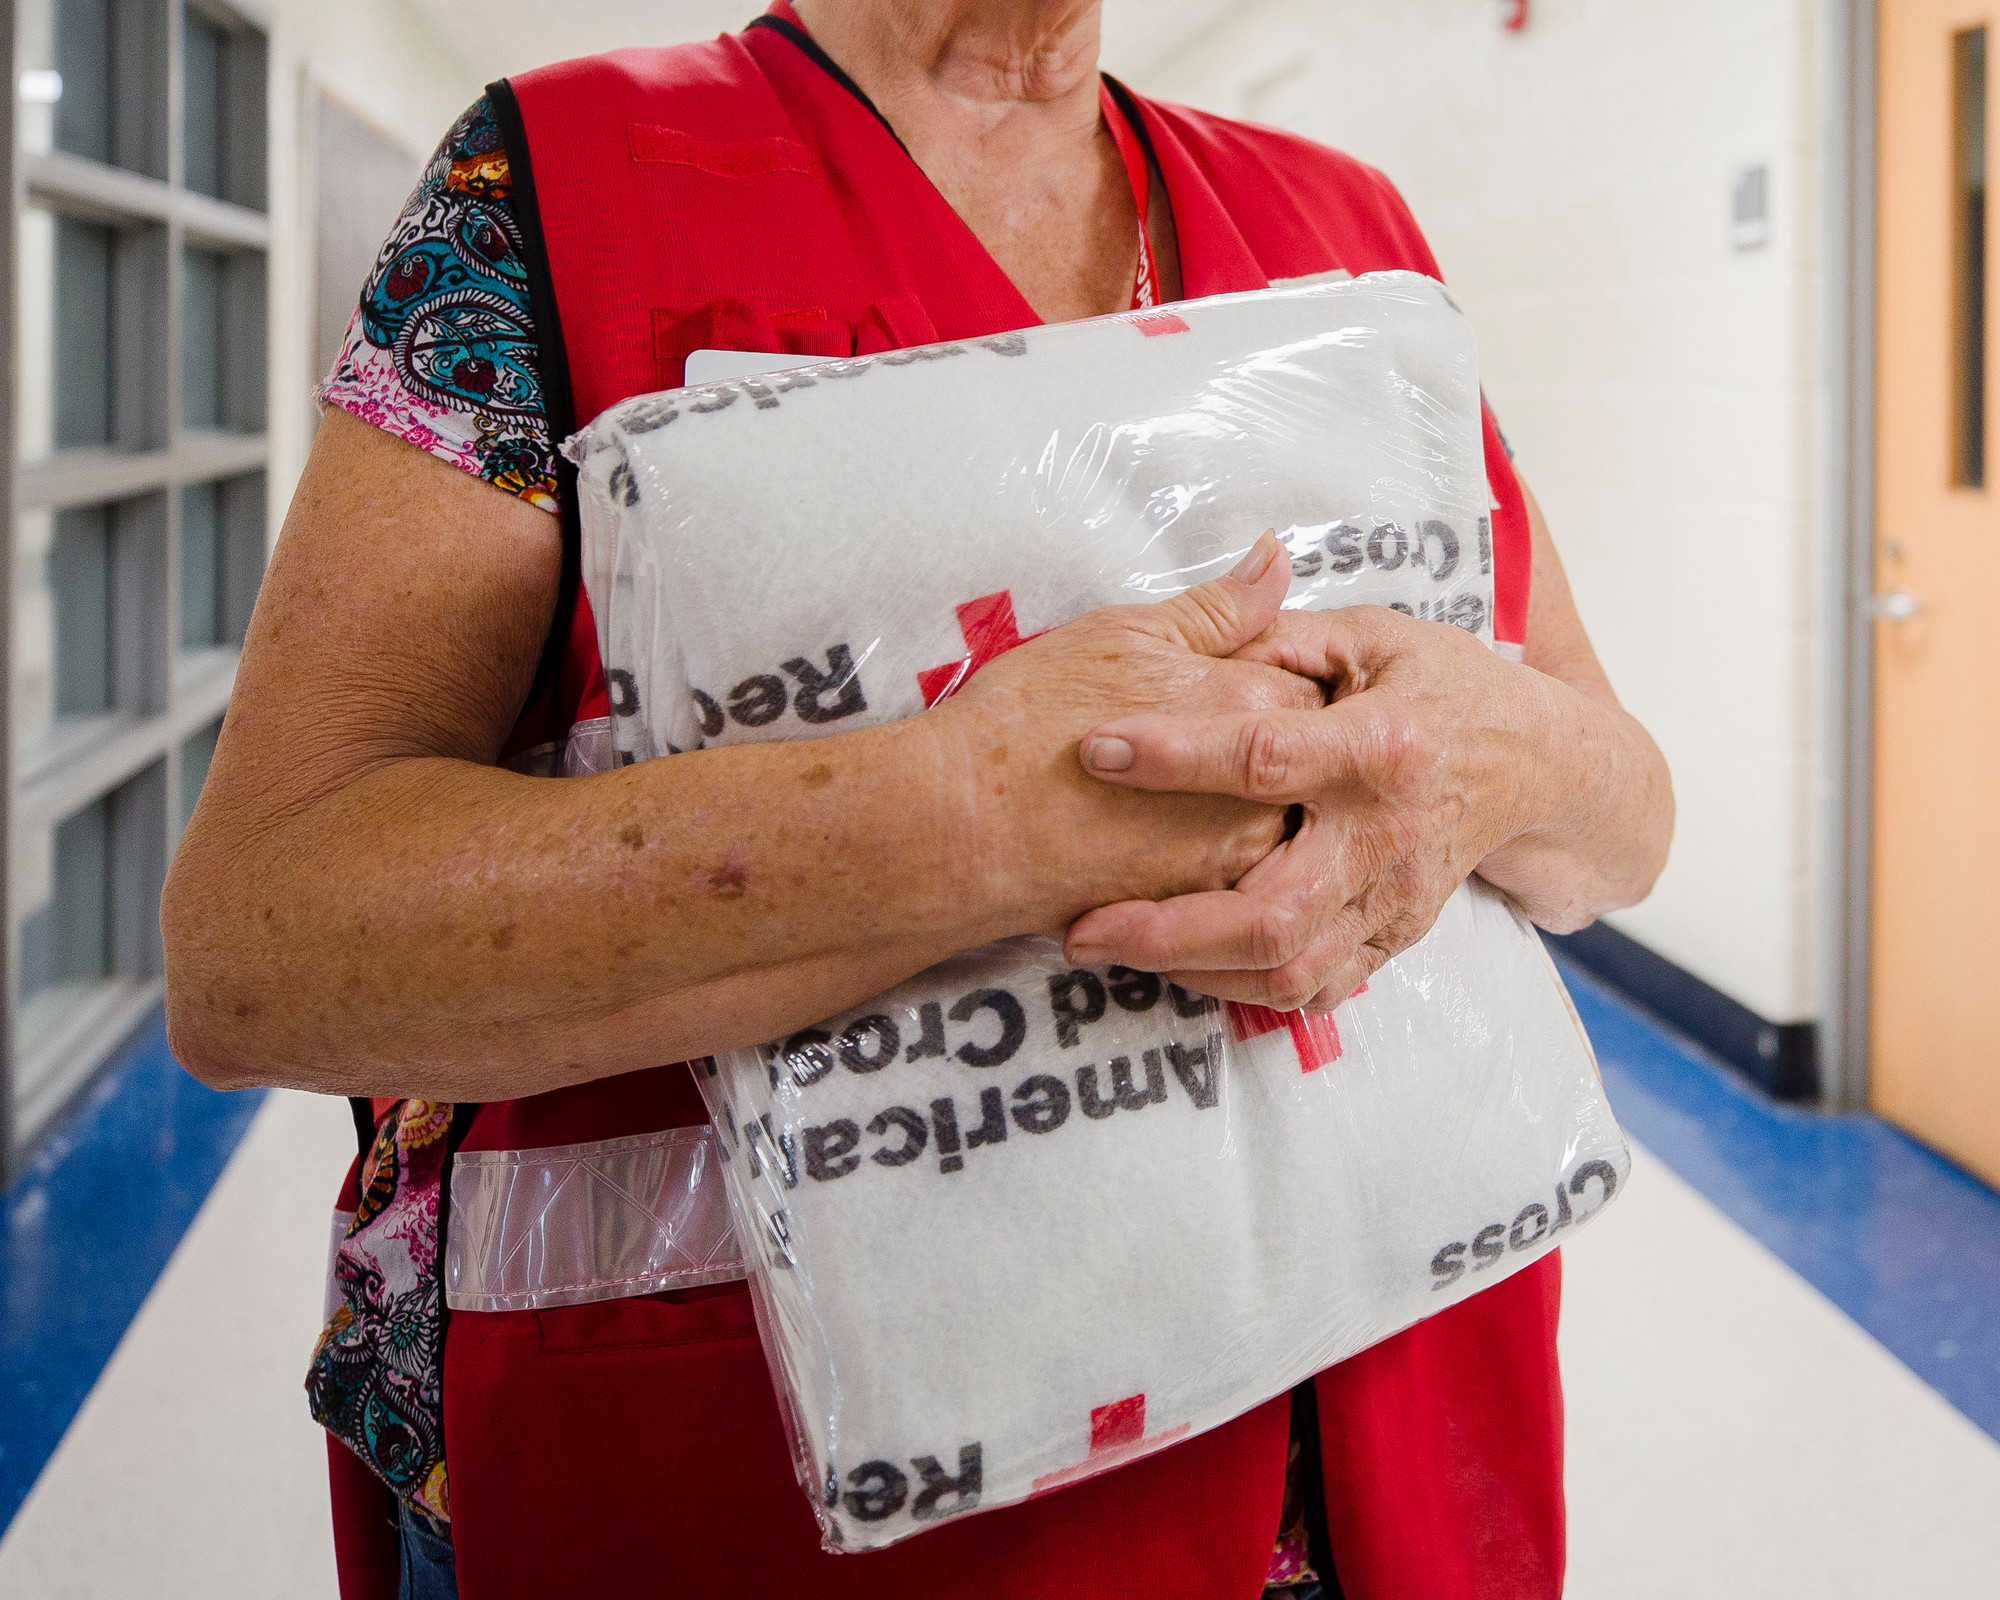 Sue Blackwell holds a Red Cross blanket at Mayewood Middle School on Wednesday.